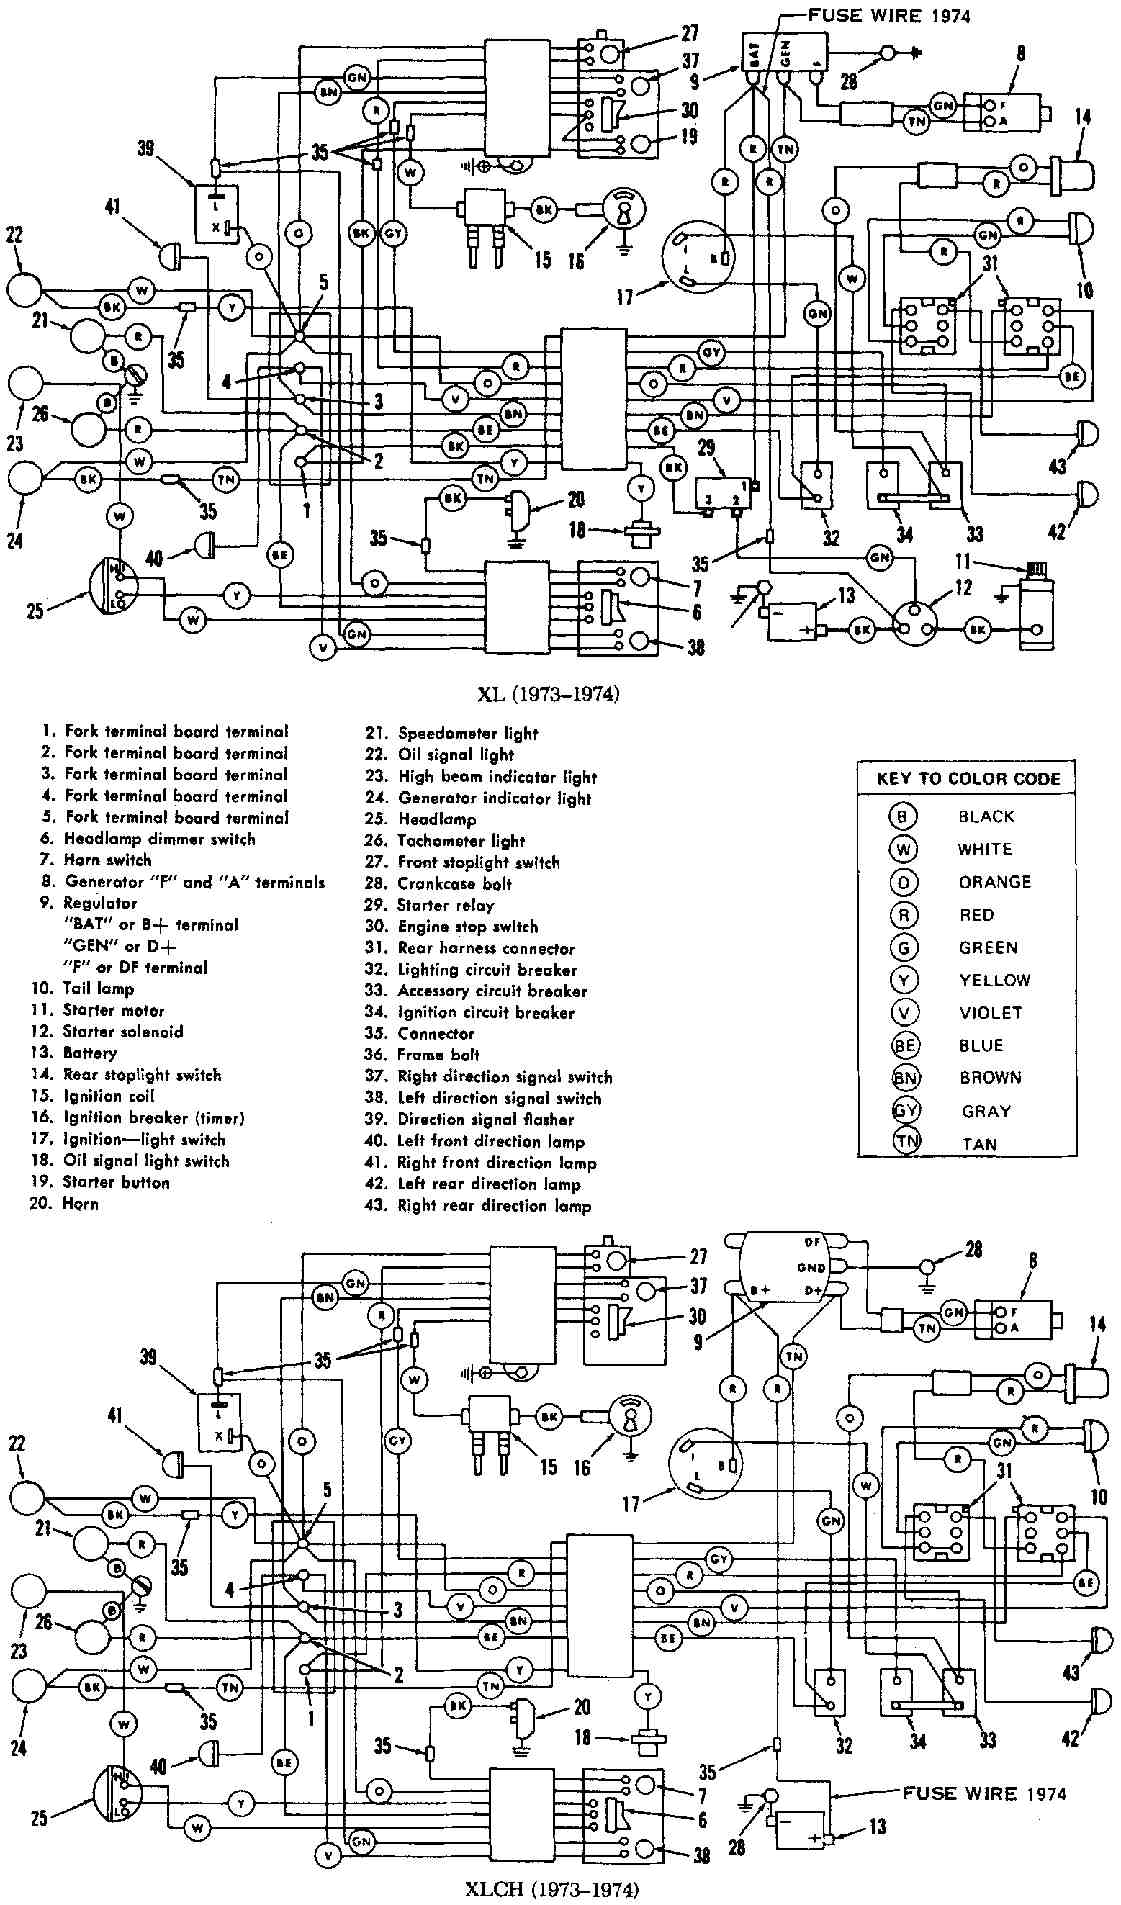 small resolution of harley flh wiring harness diagram wiring diagram harley shovelhead oil cooler harley flh wire harness schematic